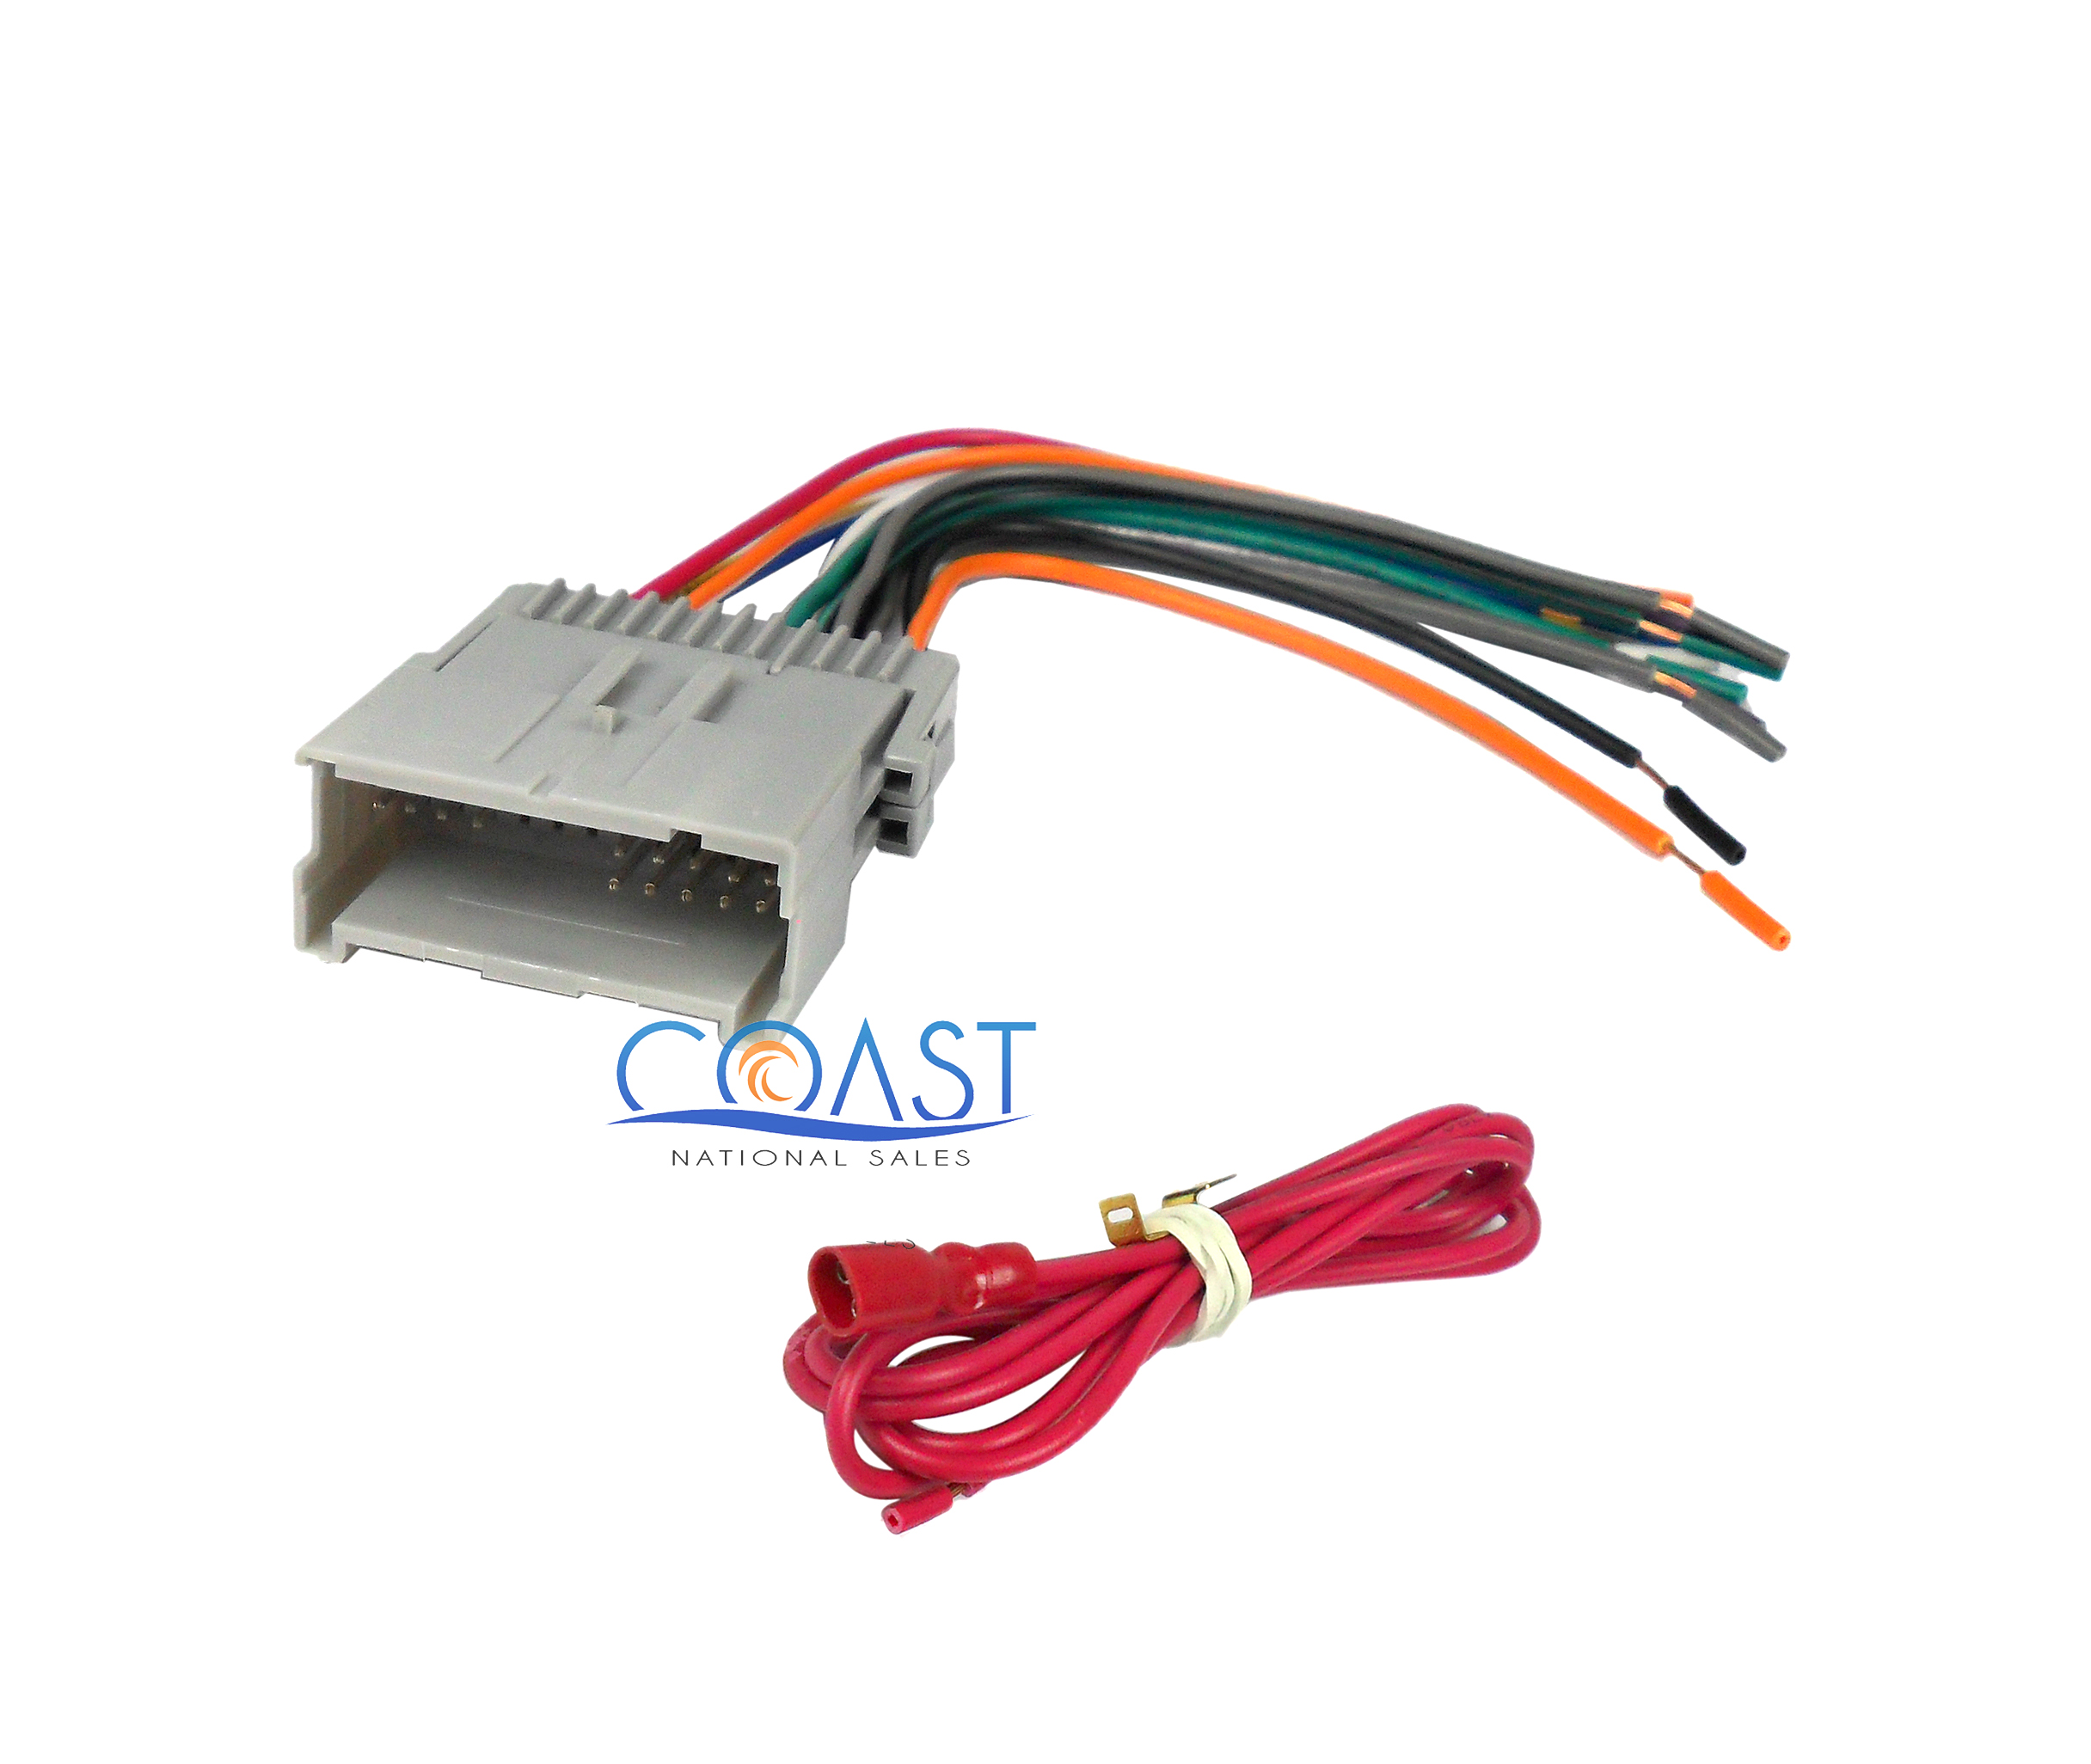 metra 70 2003 gm 4004 radio wiring harness for select 1998. Black Bedroom Furniture Sets. Home Design Ideas